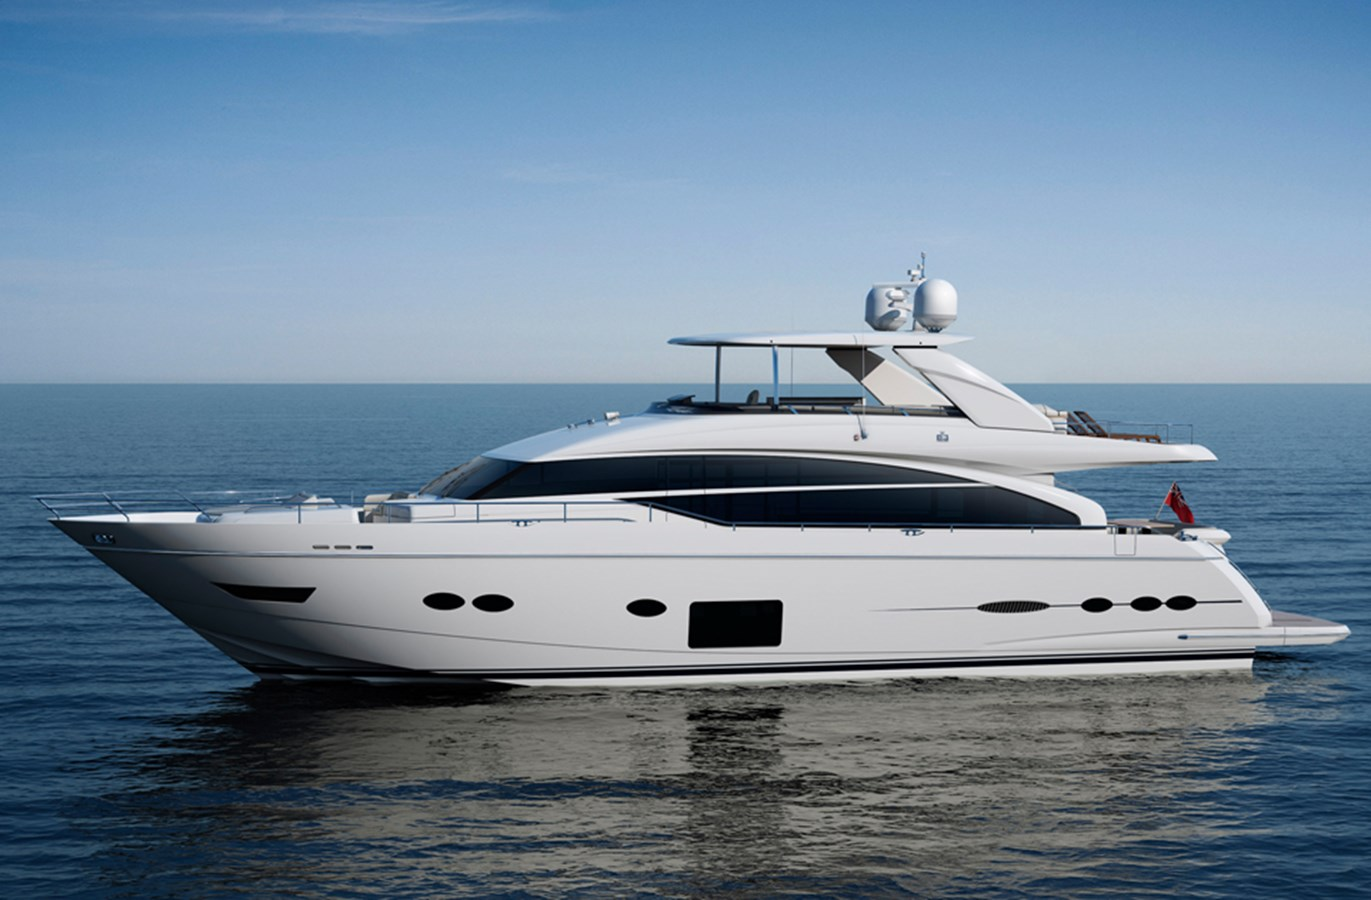 New princess 88 flybridge motor yacht for sale galati for Large motor yachts for sale